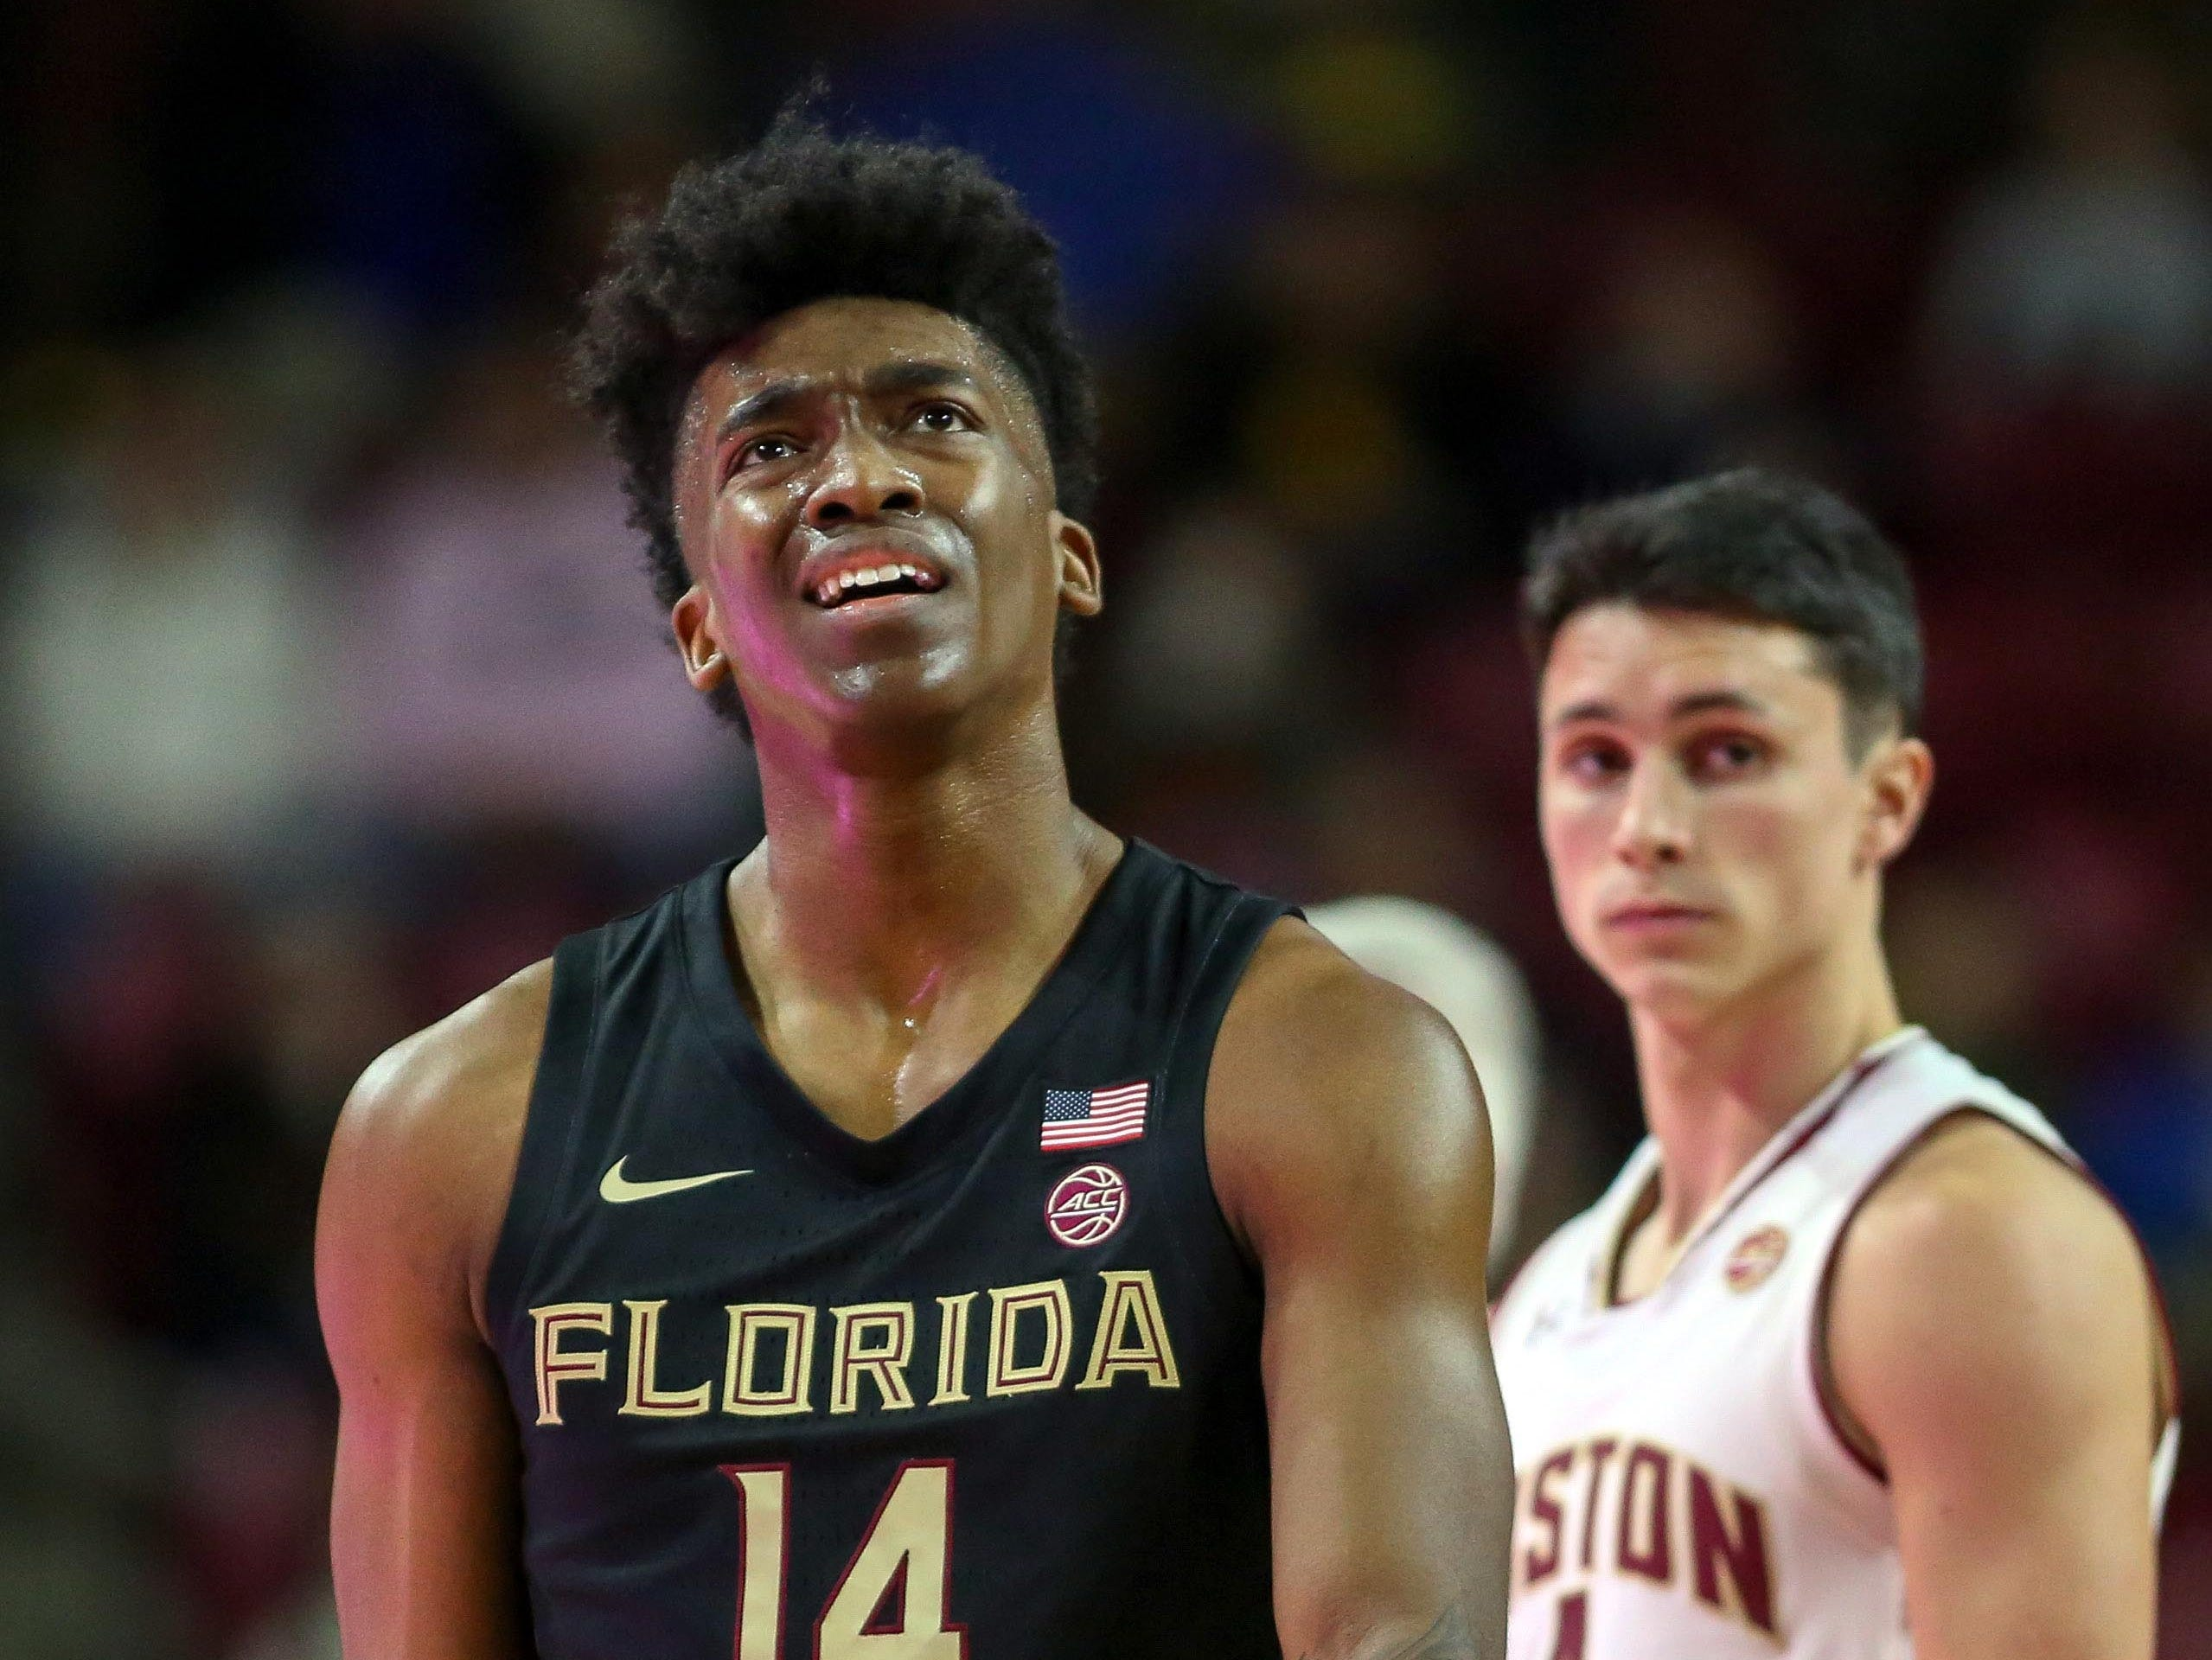 Jan 20, 2019; Chestnut Hill, MA, USA; Florida State Seminoles guard Terance Mann (14) reacts during the first half against the Boston College Eagles at Conte Forum. Mandatory Credit: Paul Rutherford-USA TODAY Sports